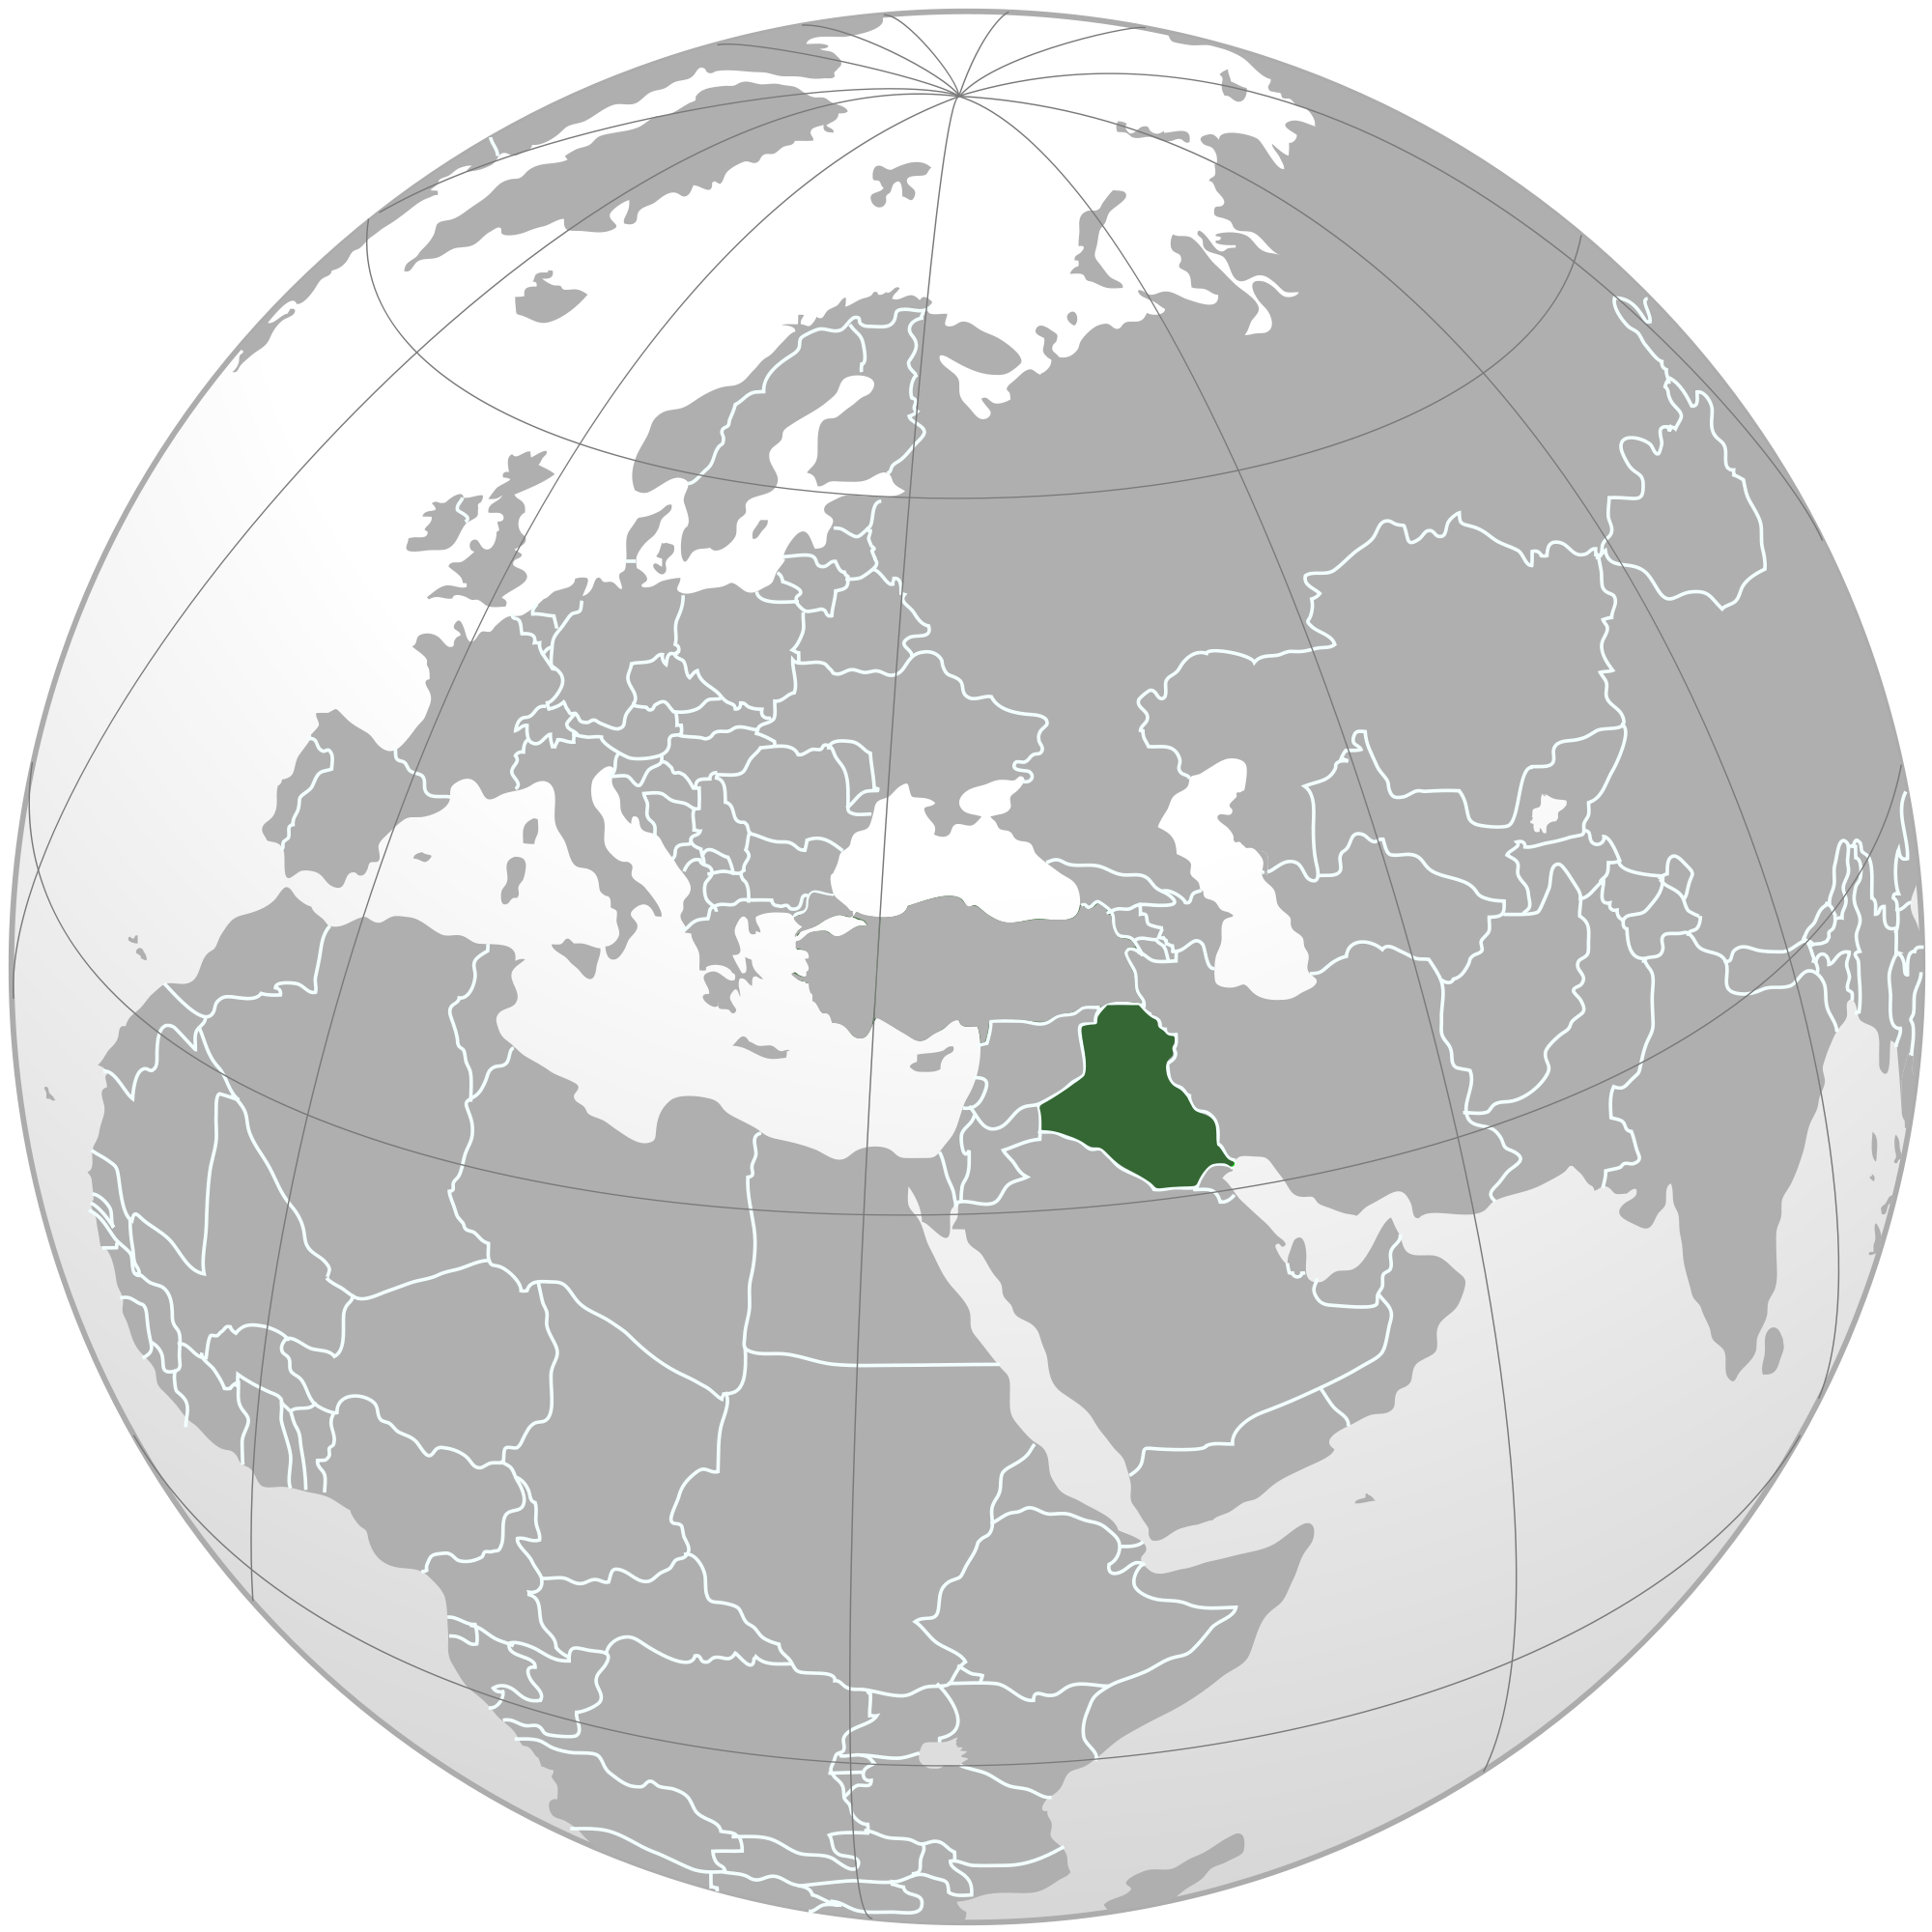 Where Is Iraq Located On The World Map.Location Of The Iraq In The World Map